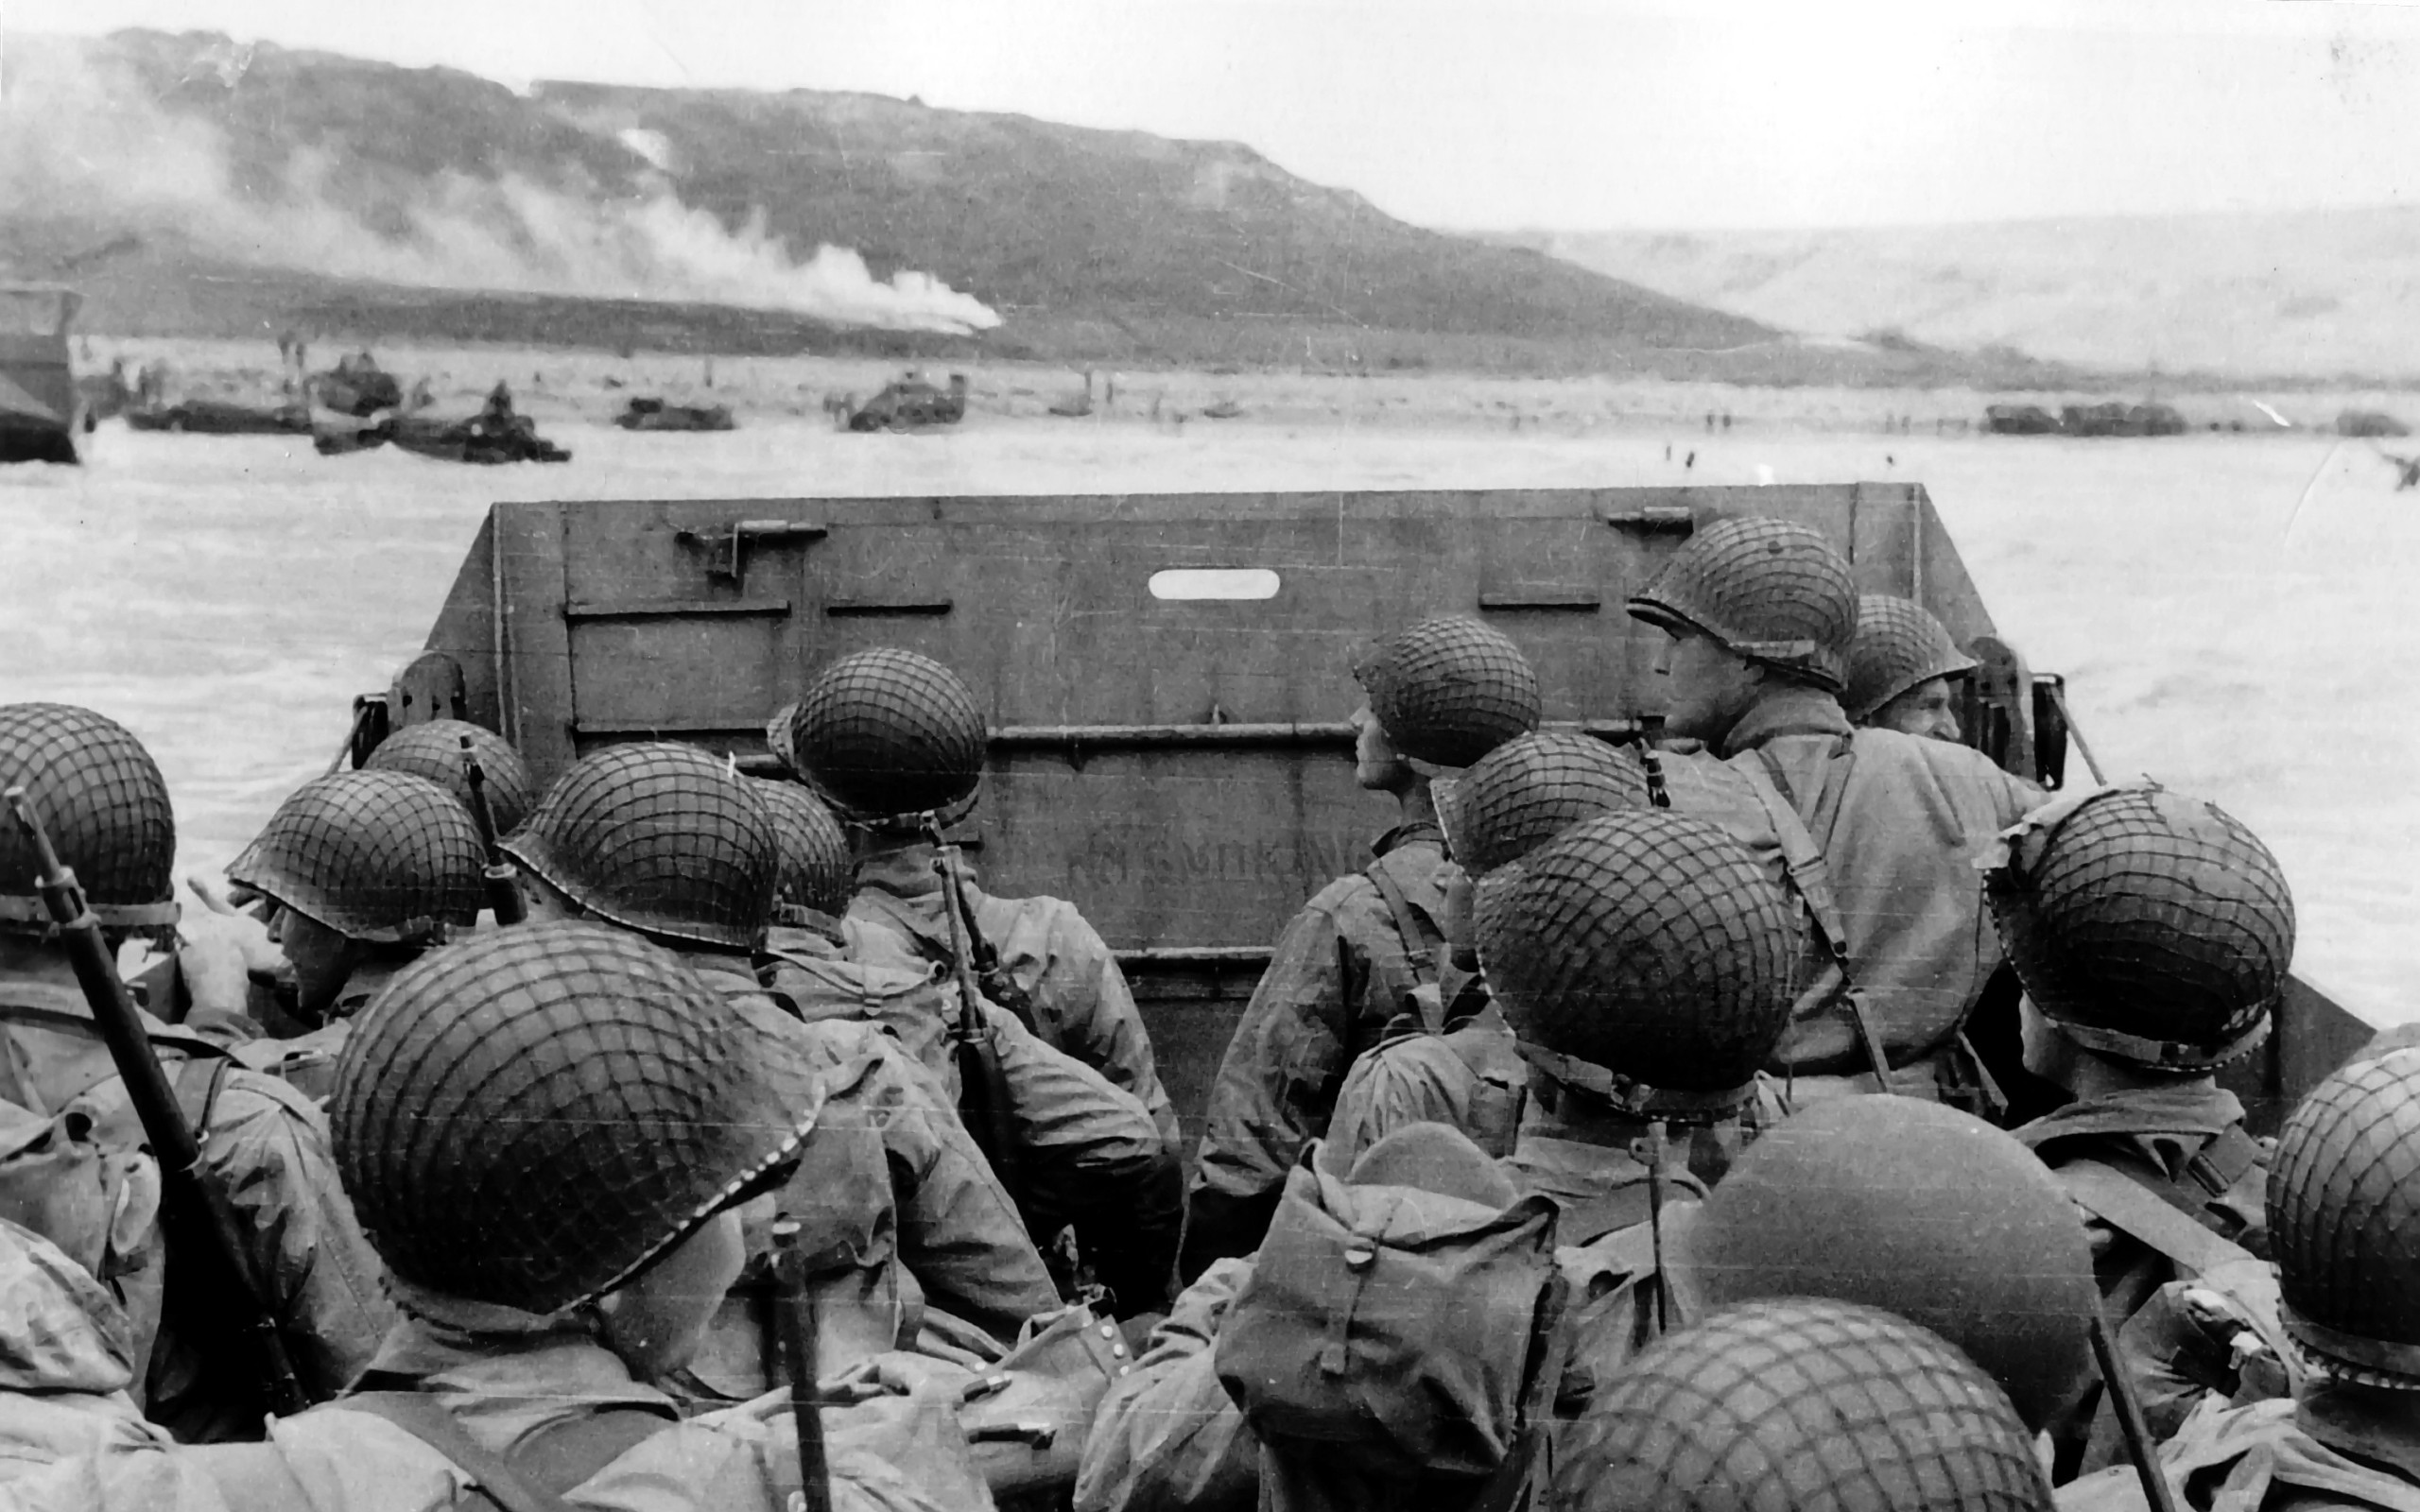 soldiers beach Normandy military grayscale World War II D 2560x1600